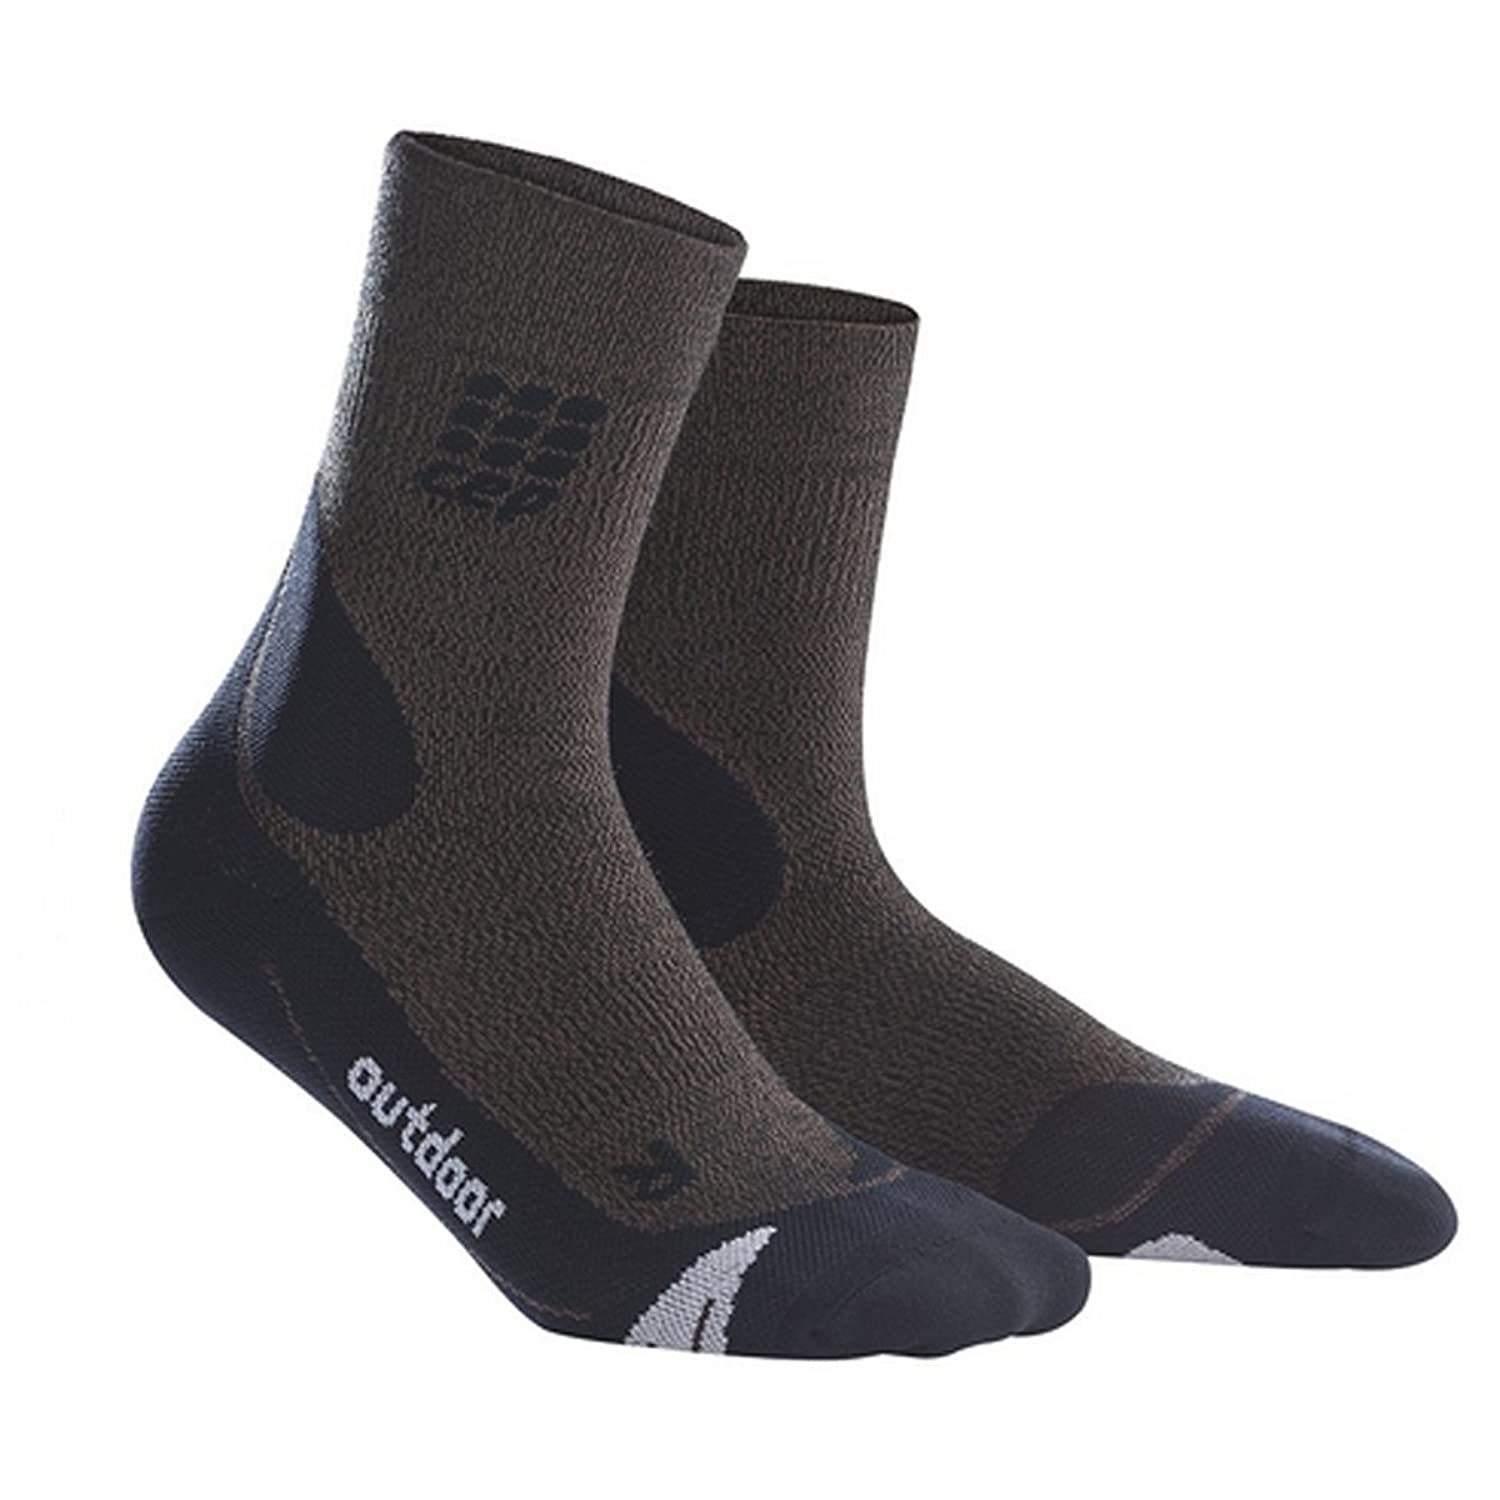 CEP Dynamic+ Outdoor Merino Mid-Cut Socken